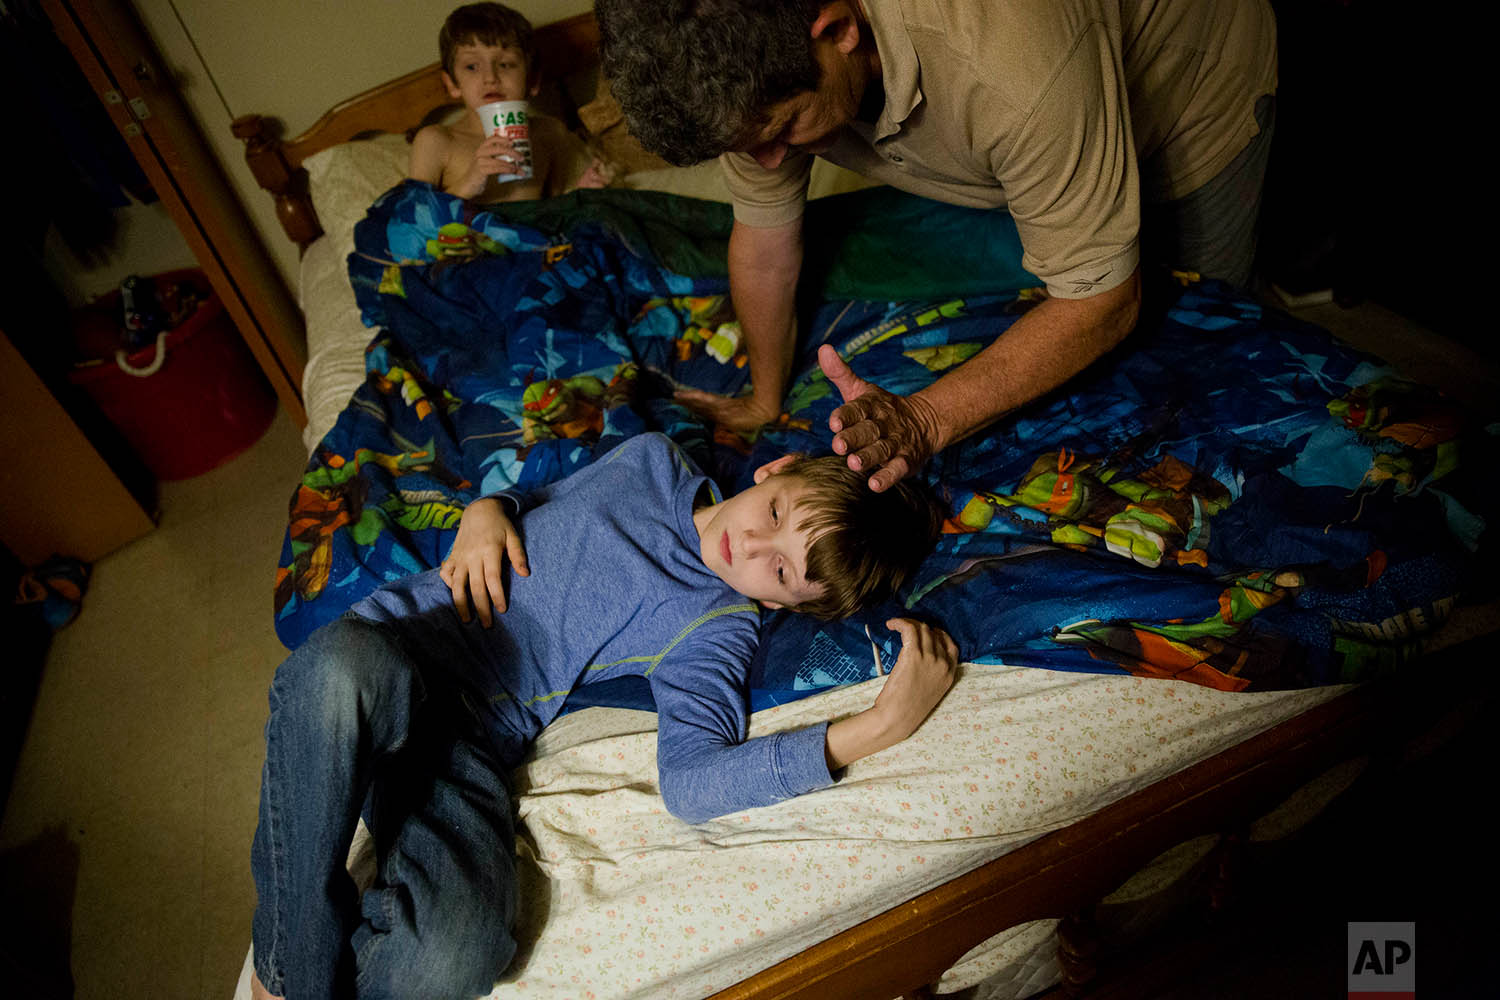 Danny Peters gets his sons Journey, 10, and Chance, 8, ready for bed in LaFollette, Tenn., Wednesday, March 28, 2018, as he cares for them while his ex-wife and the boys' mother, Crystal French, serves time in the Campbell County Jail. (AP Photo/David Goldman)